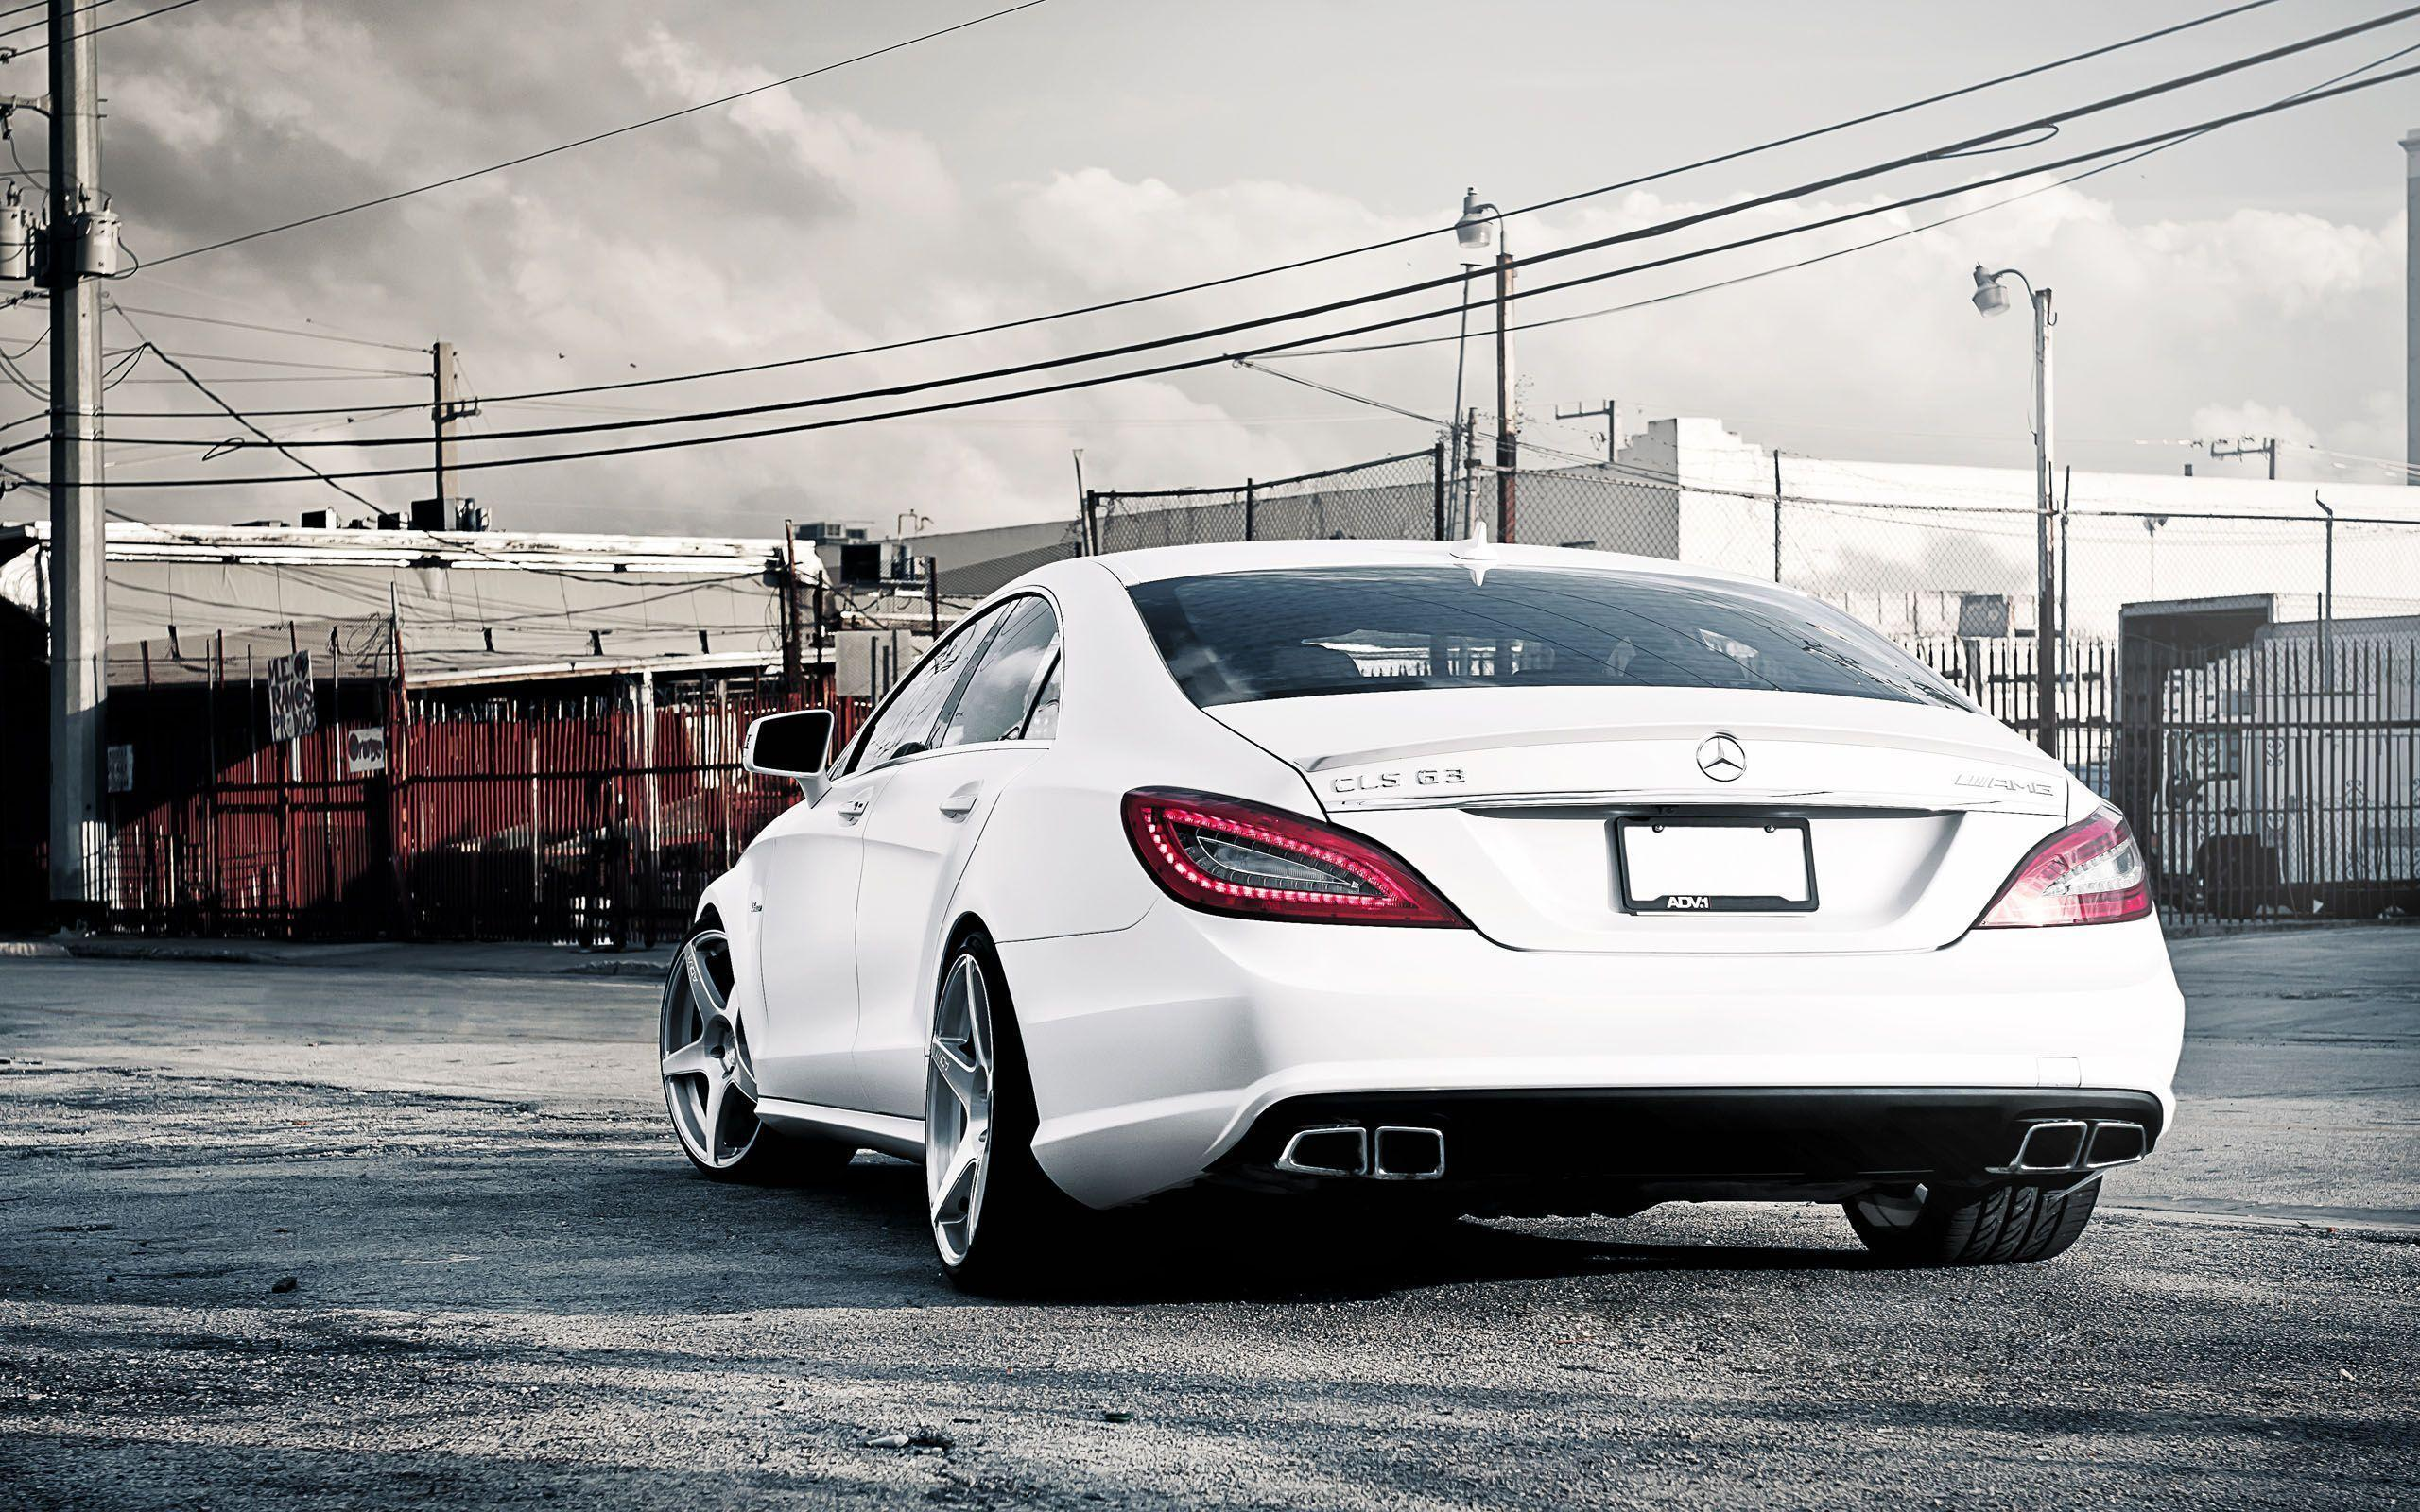 Mercedes Benz AMG Wallpapers Wallpaper Cave